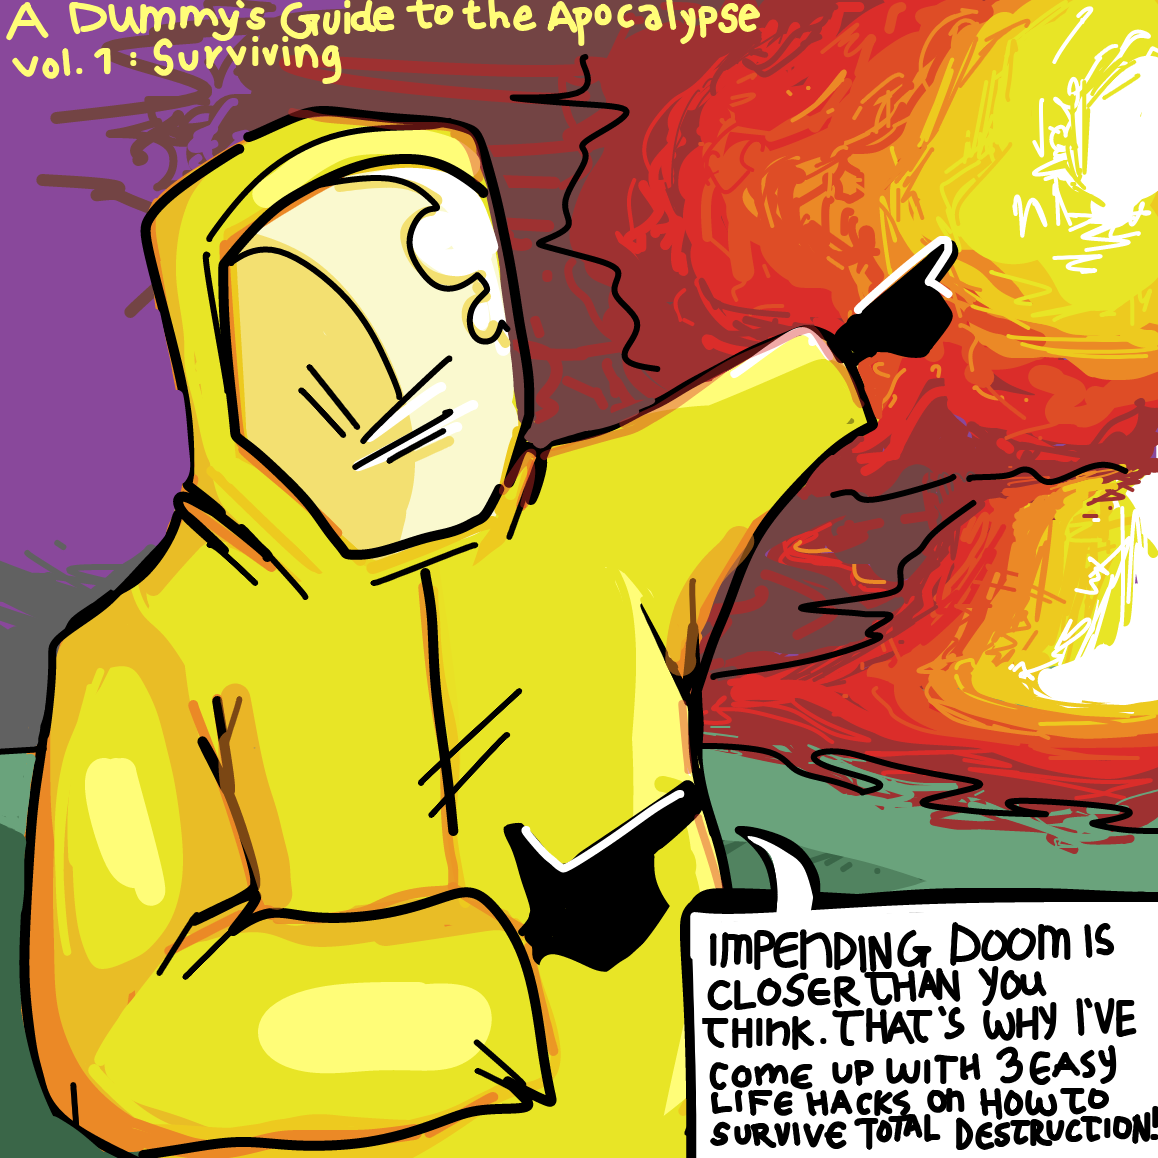 Liked webcomic 3 easy tips to surviving a nuclear holocaust